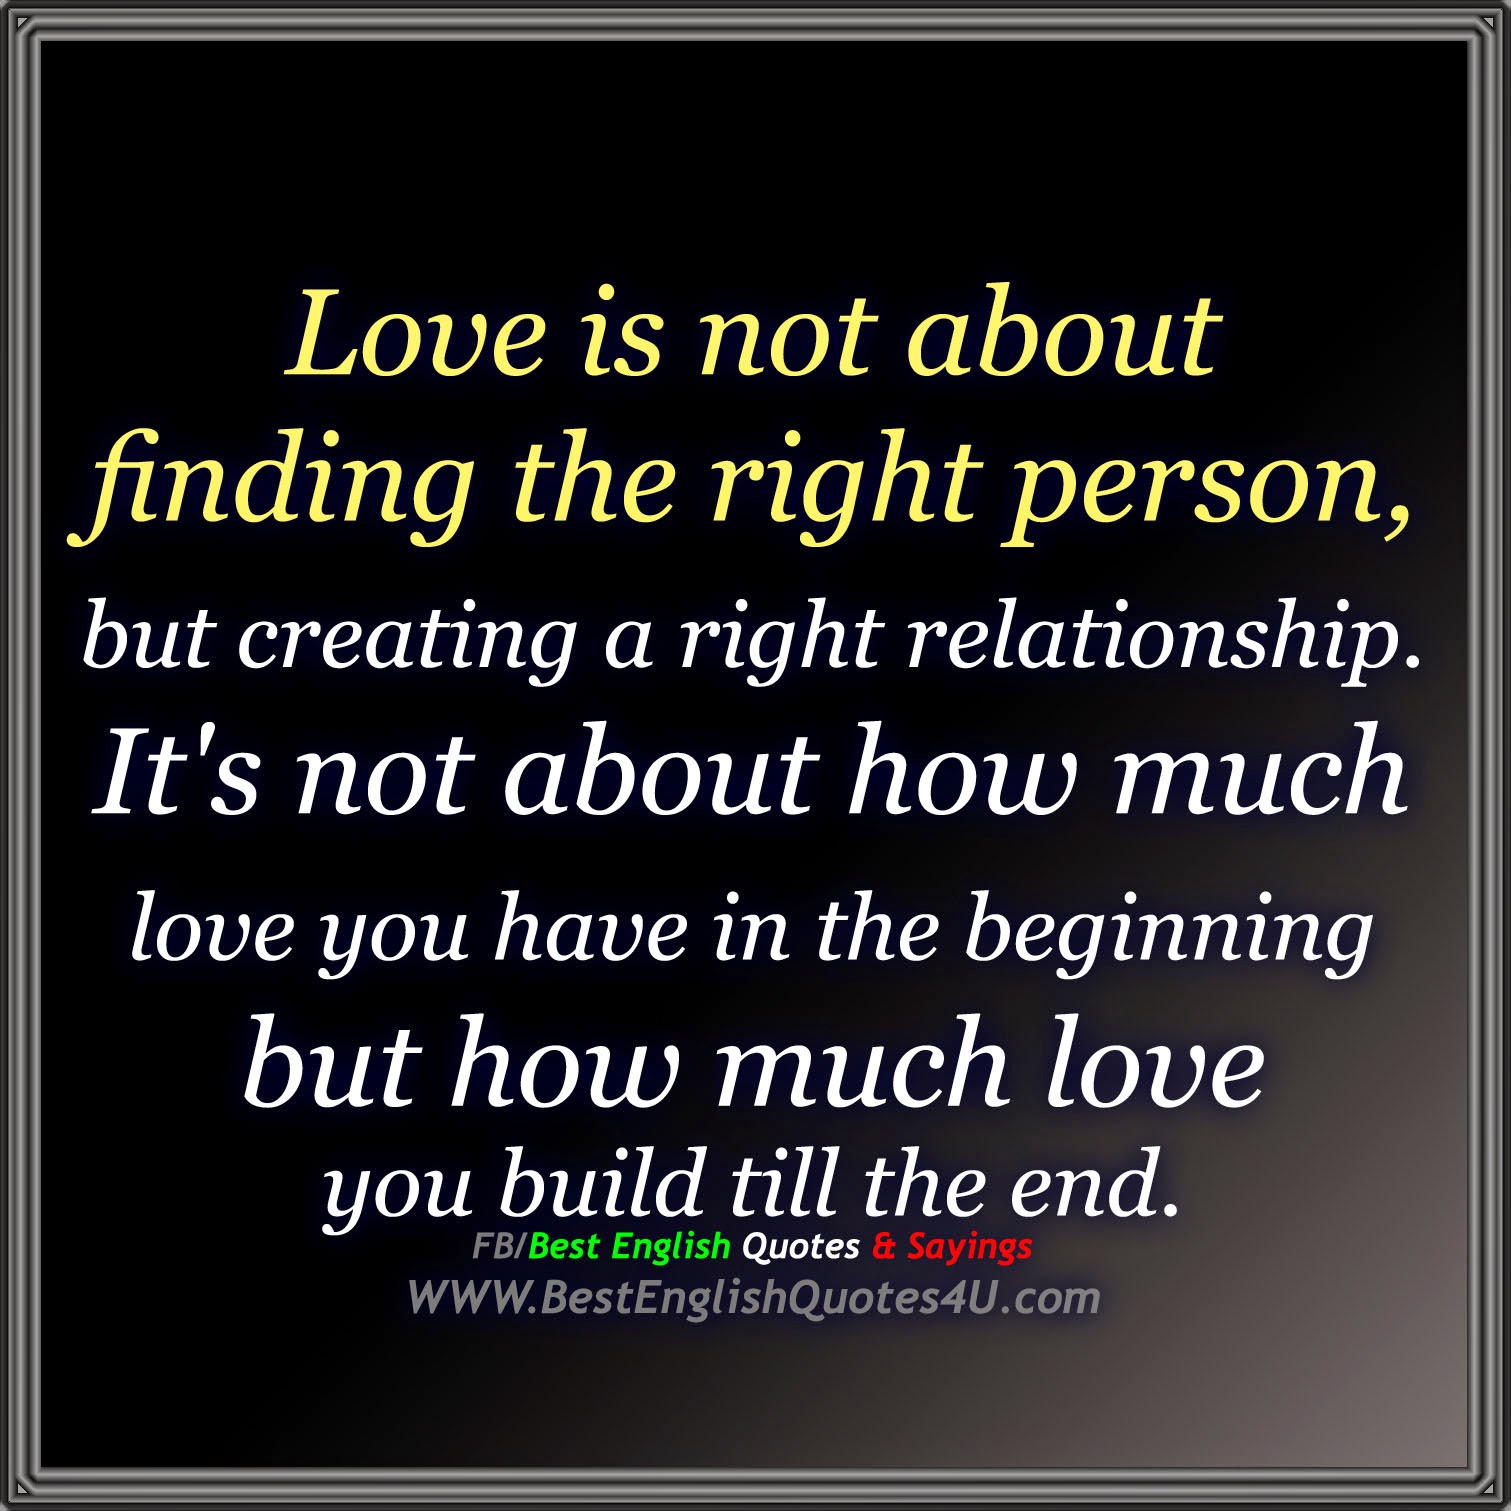 Quotes About How Much I Love You Love Is Not About Finding The Right Person Best'english